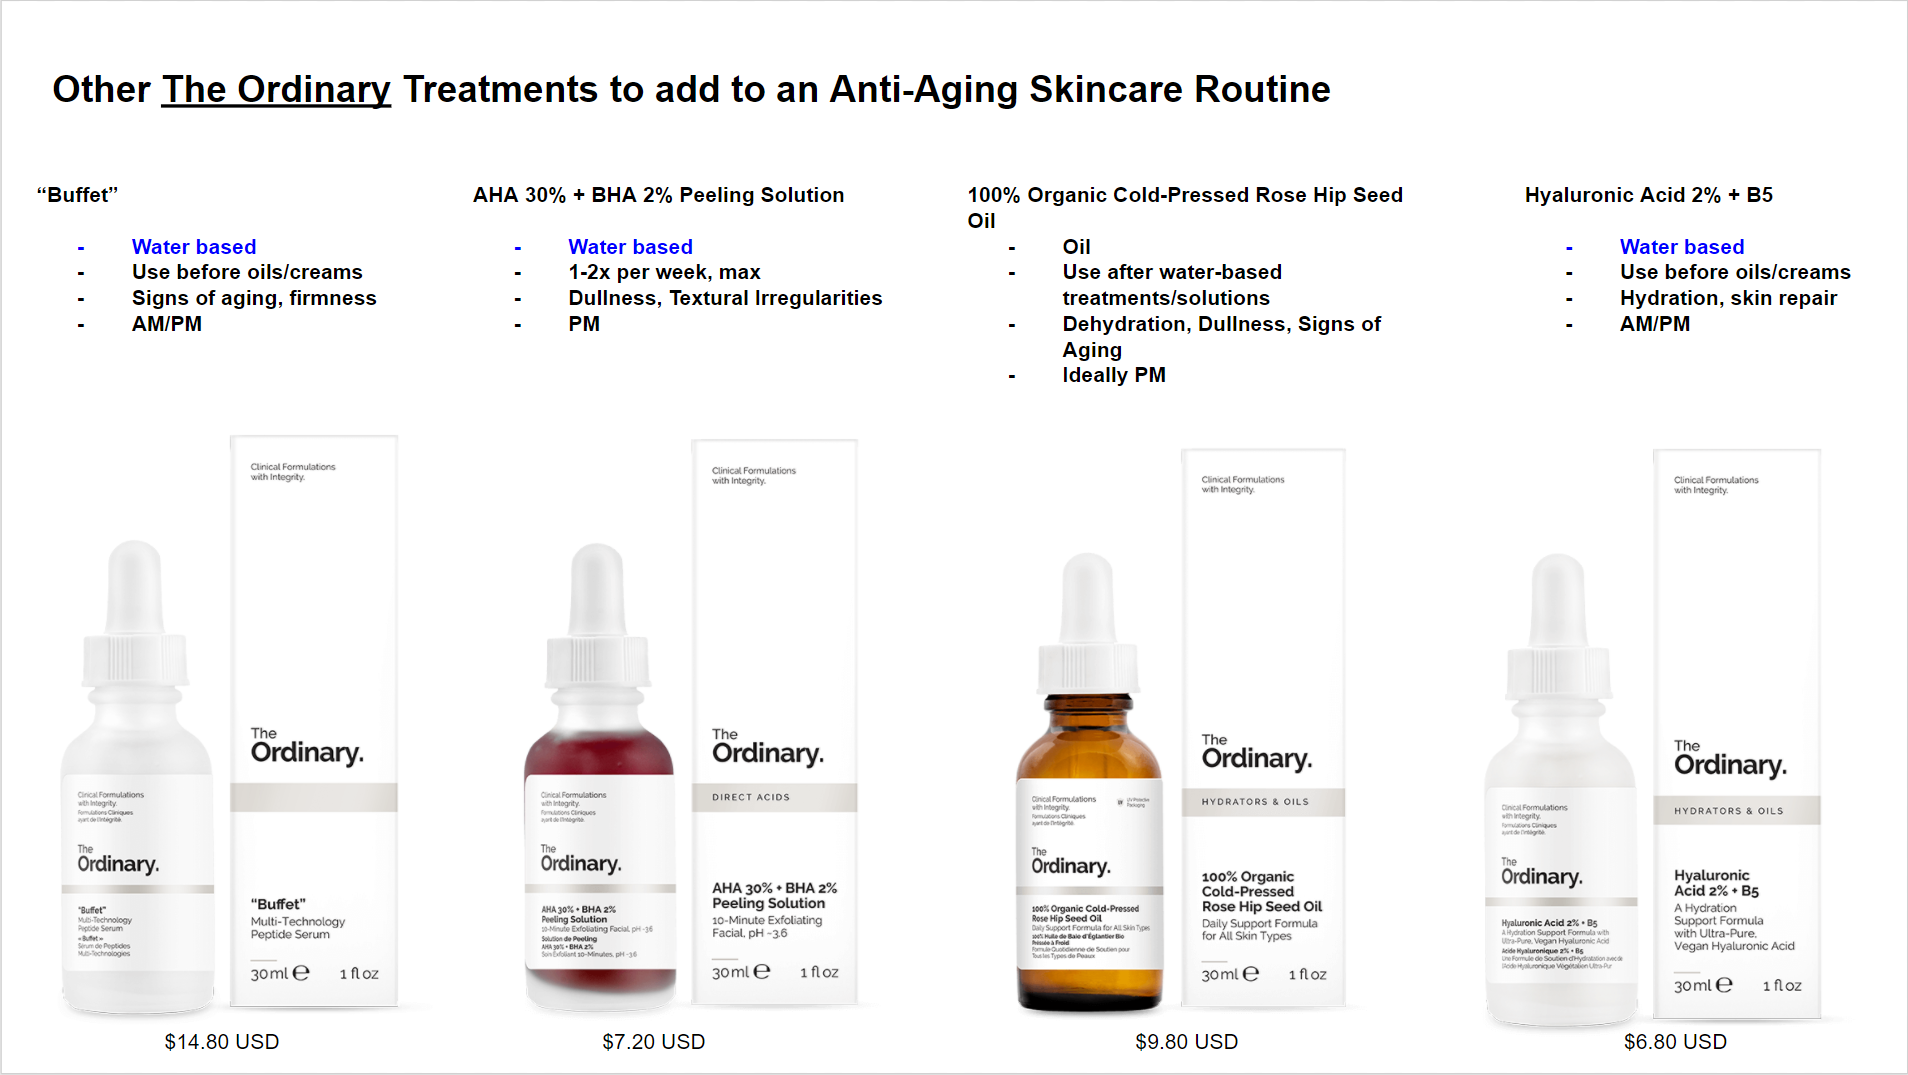 The Ordinary The Complete Anti Aging Regimen Guide Anti Aging Skincare Routine Anti Aging Skin Care The Ordinary Anti Aging